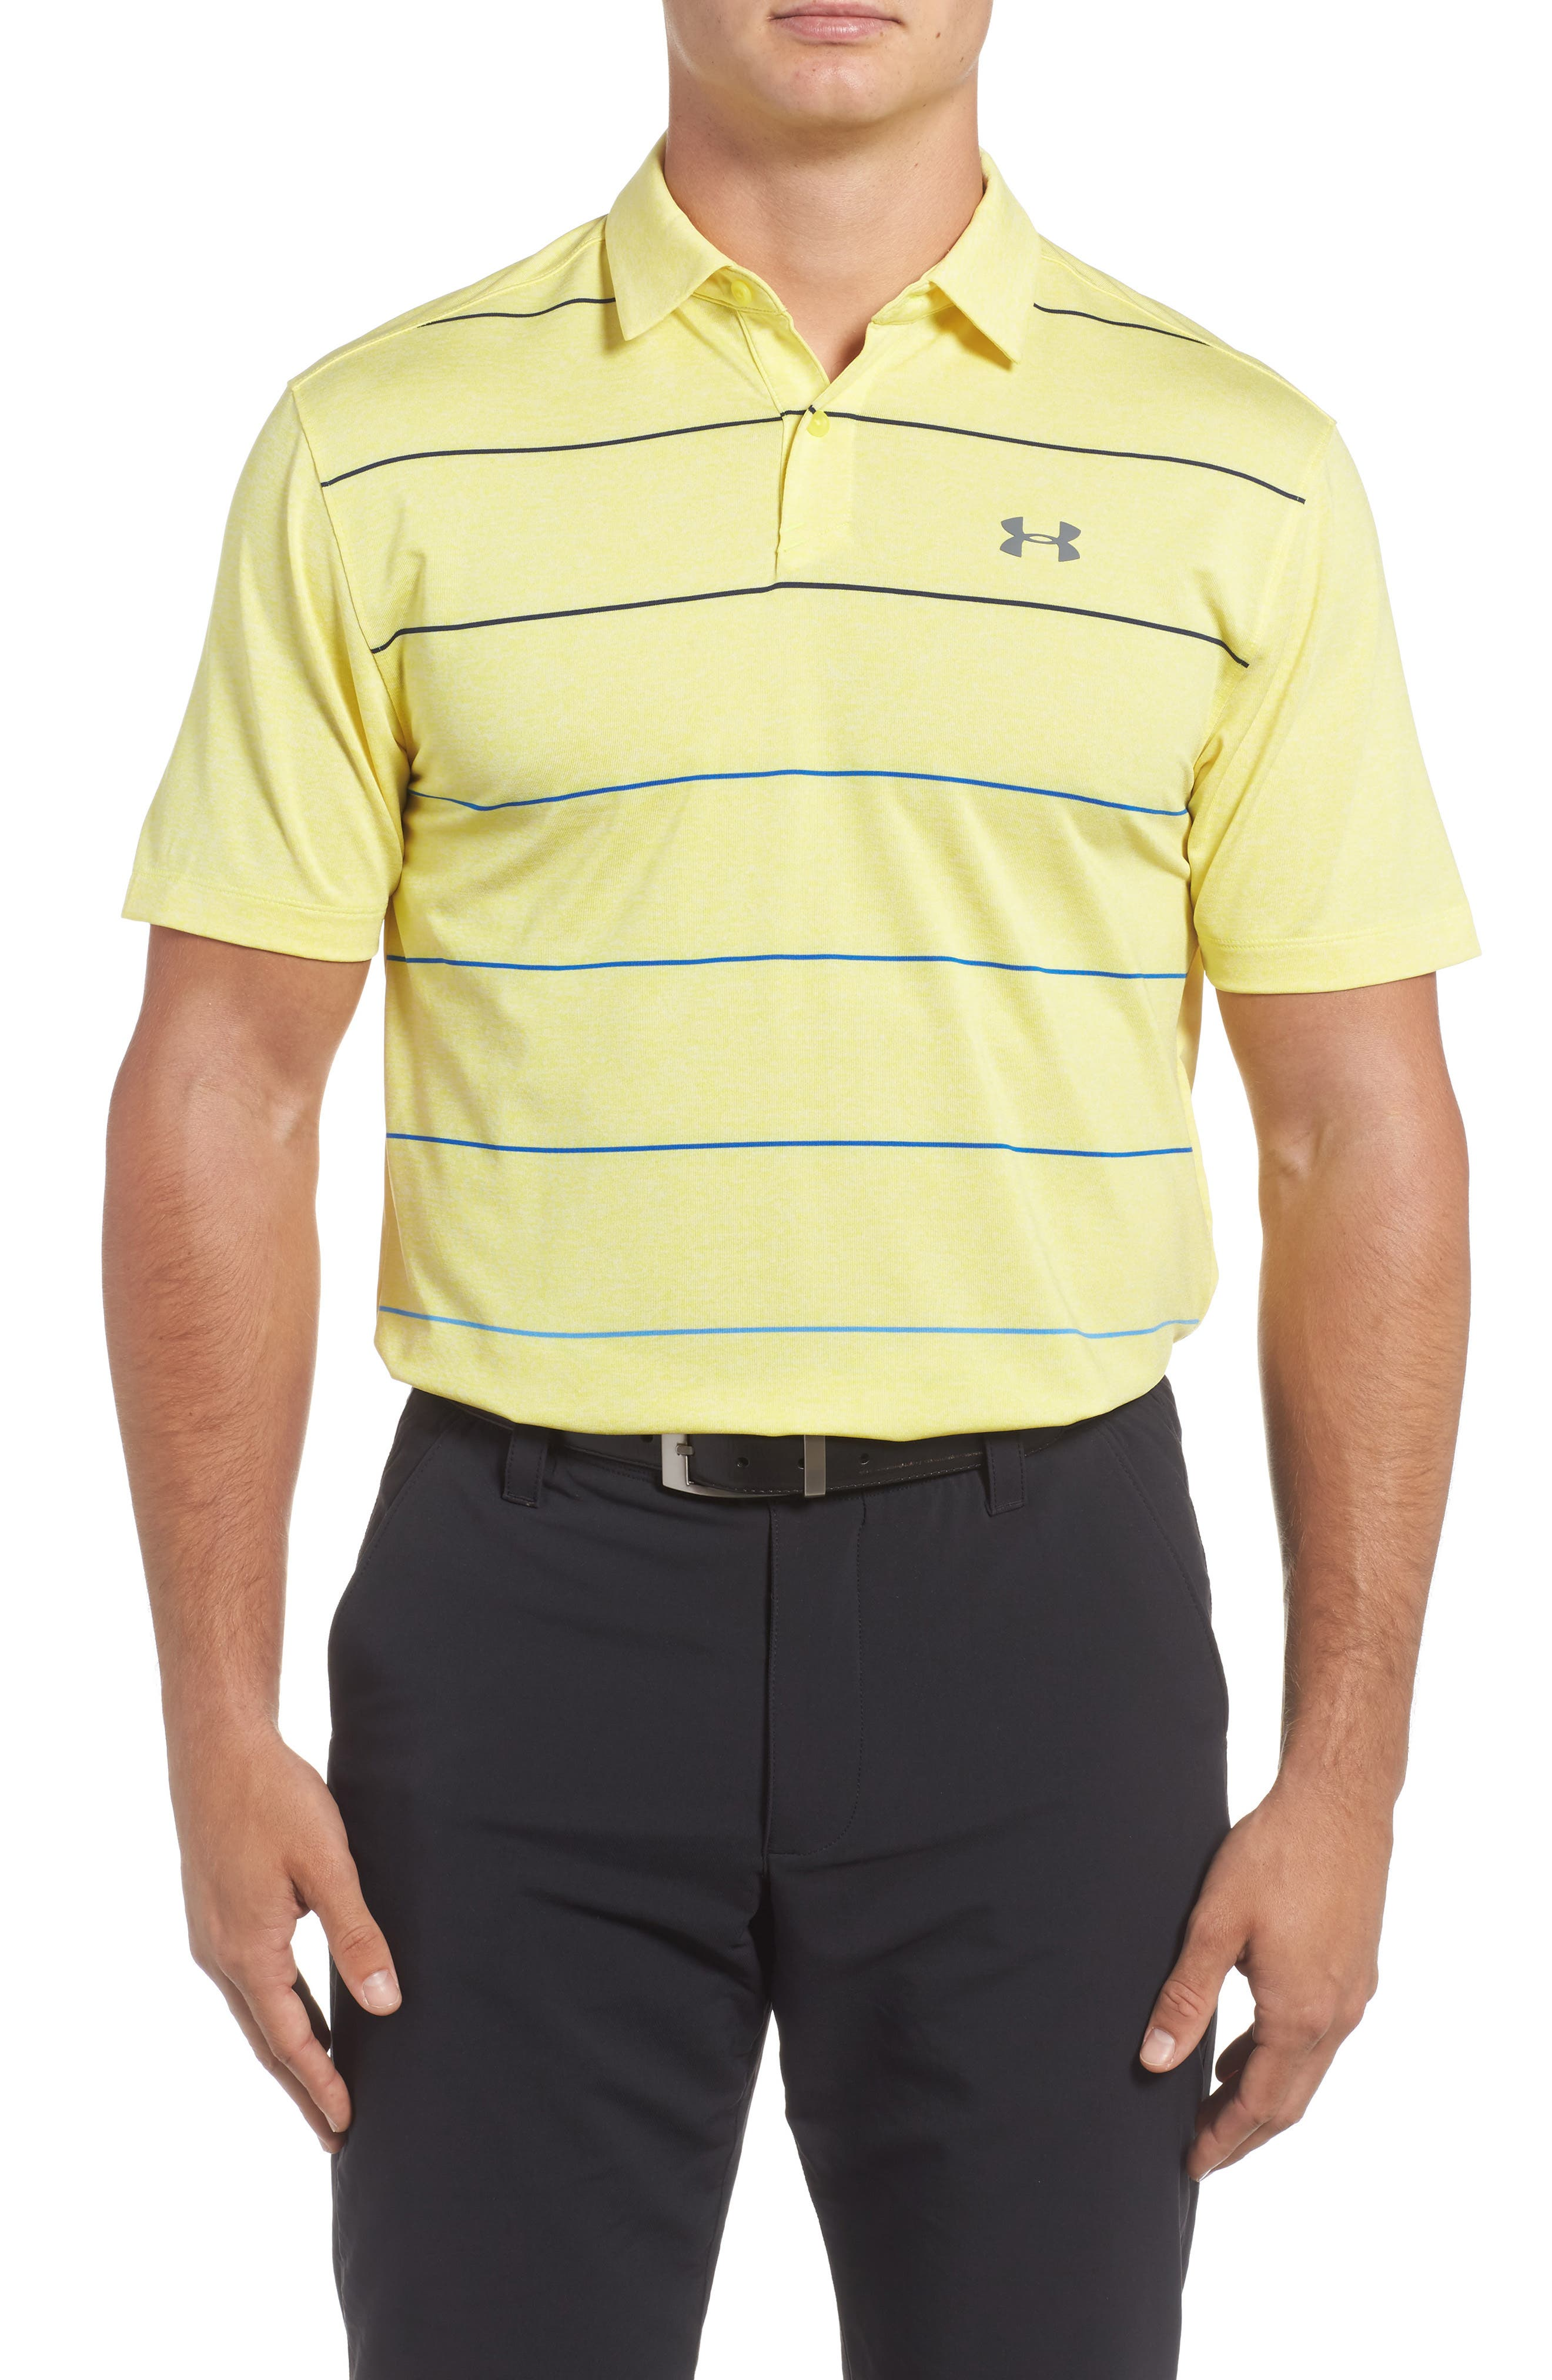 CoolSwitch Regular Fit Polo,                             Main thumbnail 1, color,                             Tokyo Lemon / Steel